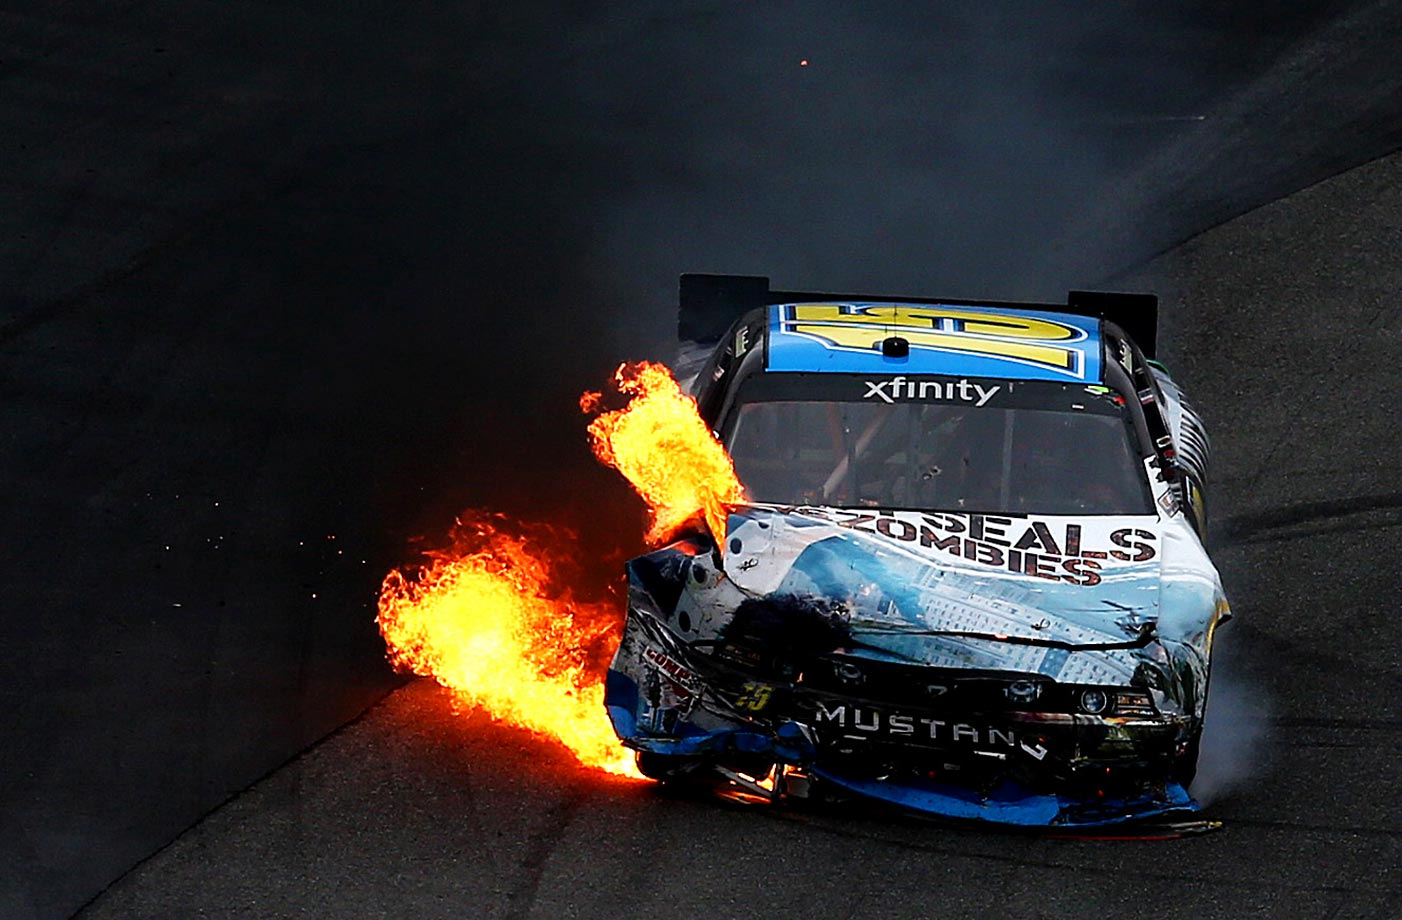 Flames pour from the Navy SealsVsZombies.com Ford, driven by Stanton Barrett during the NASCAR XFINITY Series Hisense 200.